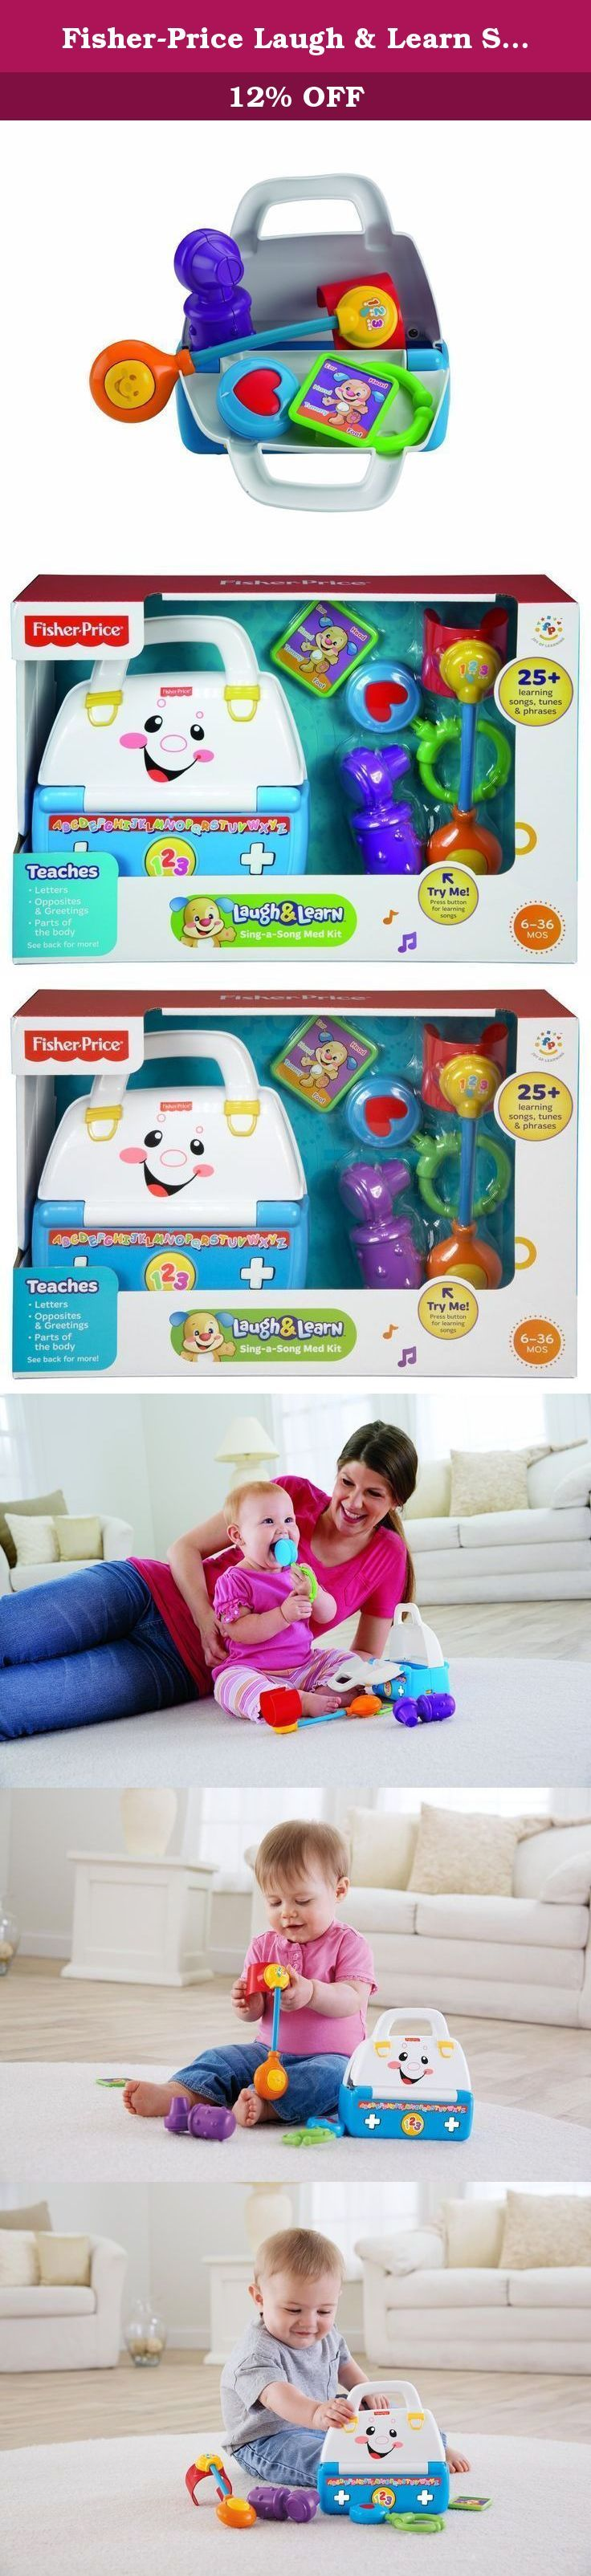 Fisher-Price Laugh & Learn Sing-a-Song Med Kit. Laugh & Learn Sing-a-Song Med Kit has different modes of play, fun songs, and lots of play pieces View larger Encourages role-play fun and sparks imagination View larger Role-Play Fun The doctor is in! Inspire role play fun with a play med kit made just for baby. It's packed full of tools that encourage imaginative play and introduce early learning concepts at the same time. Press the button on the kit to hear sing-along songs, tunes, and...